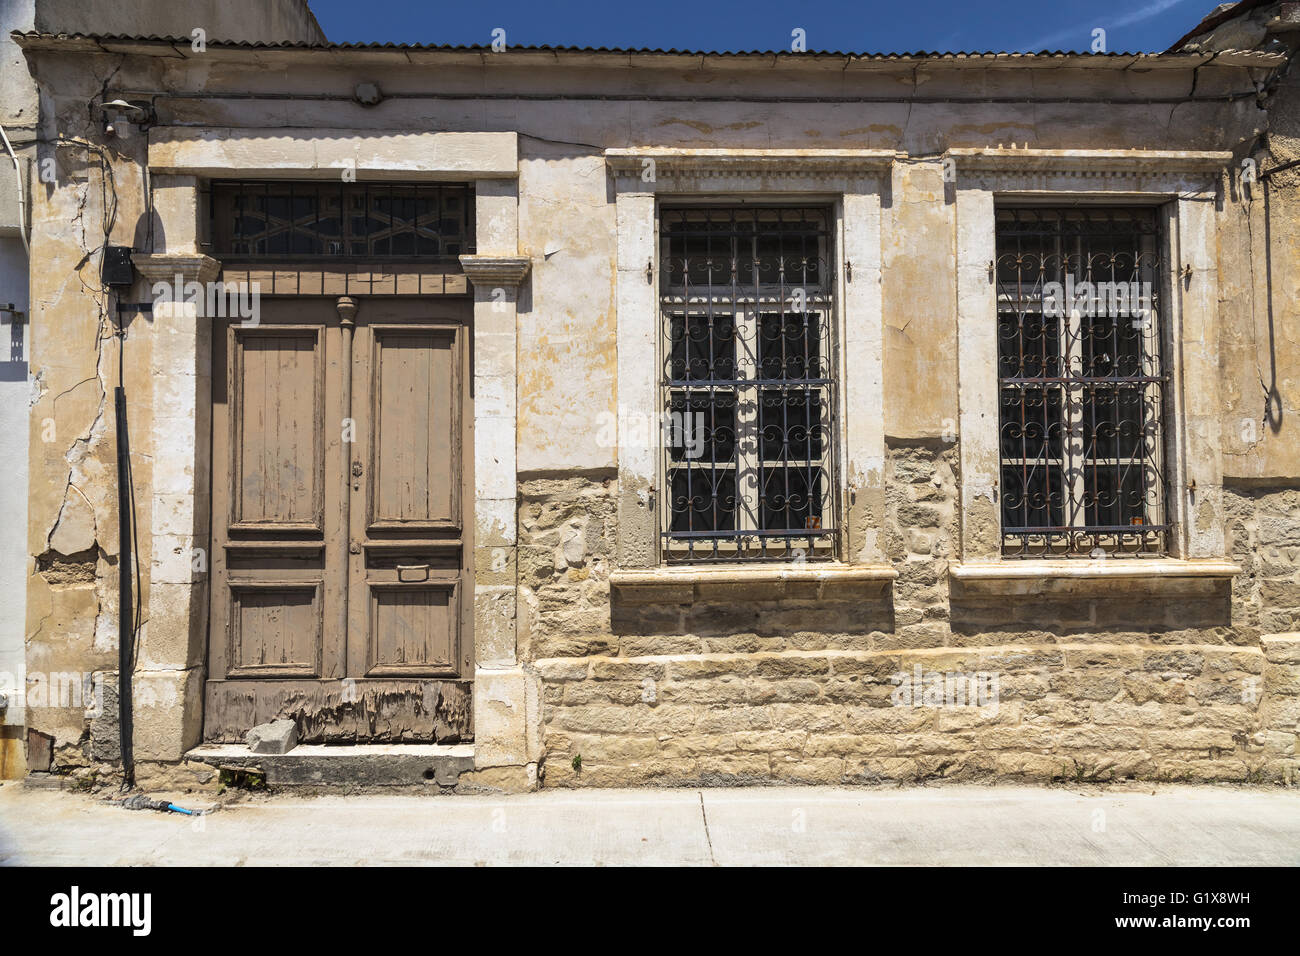 Wooden doors and windows with bars in the old building in old town ...